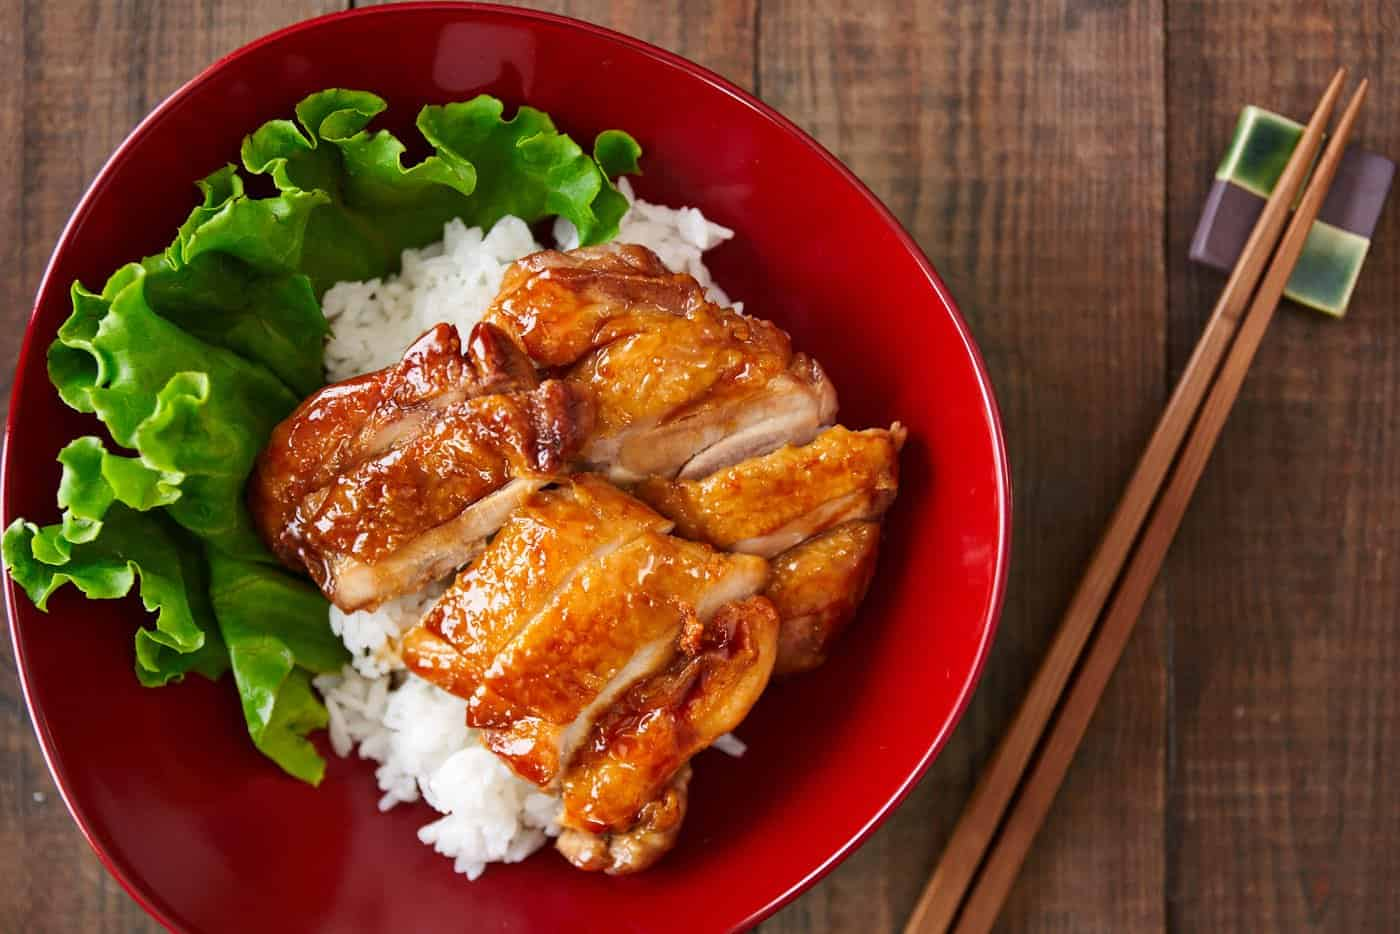 Delicious savory sweet Chicken Teriyaki in a red bowl over rice. Lean to make this easy Japanese favorite.